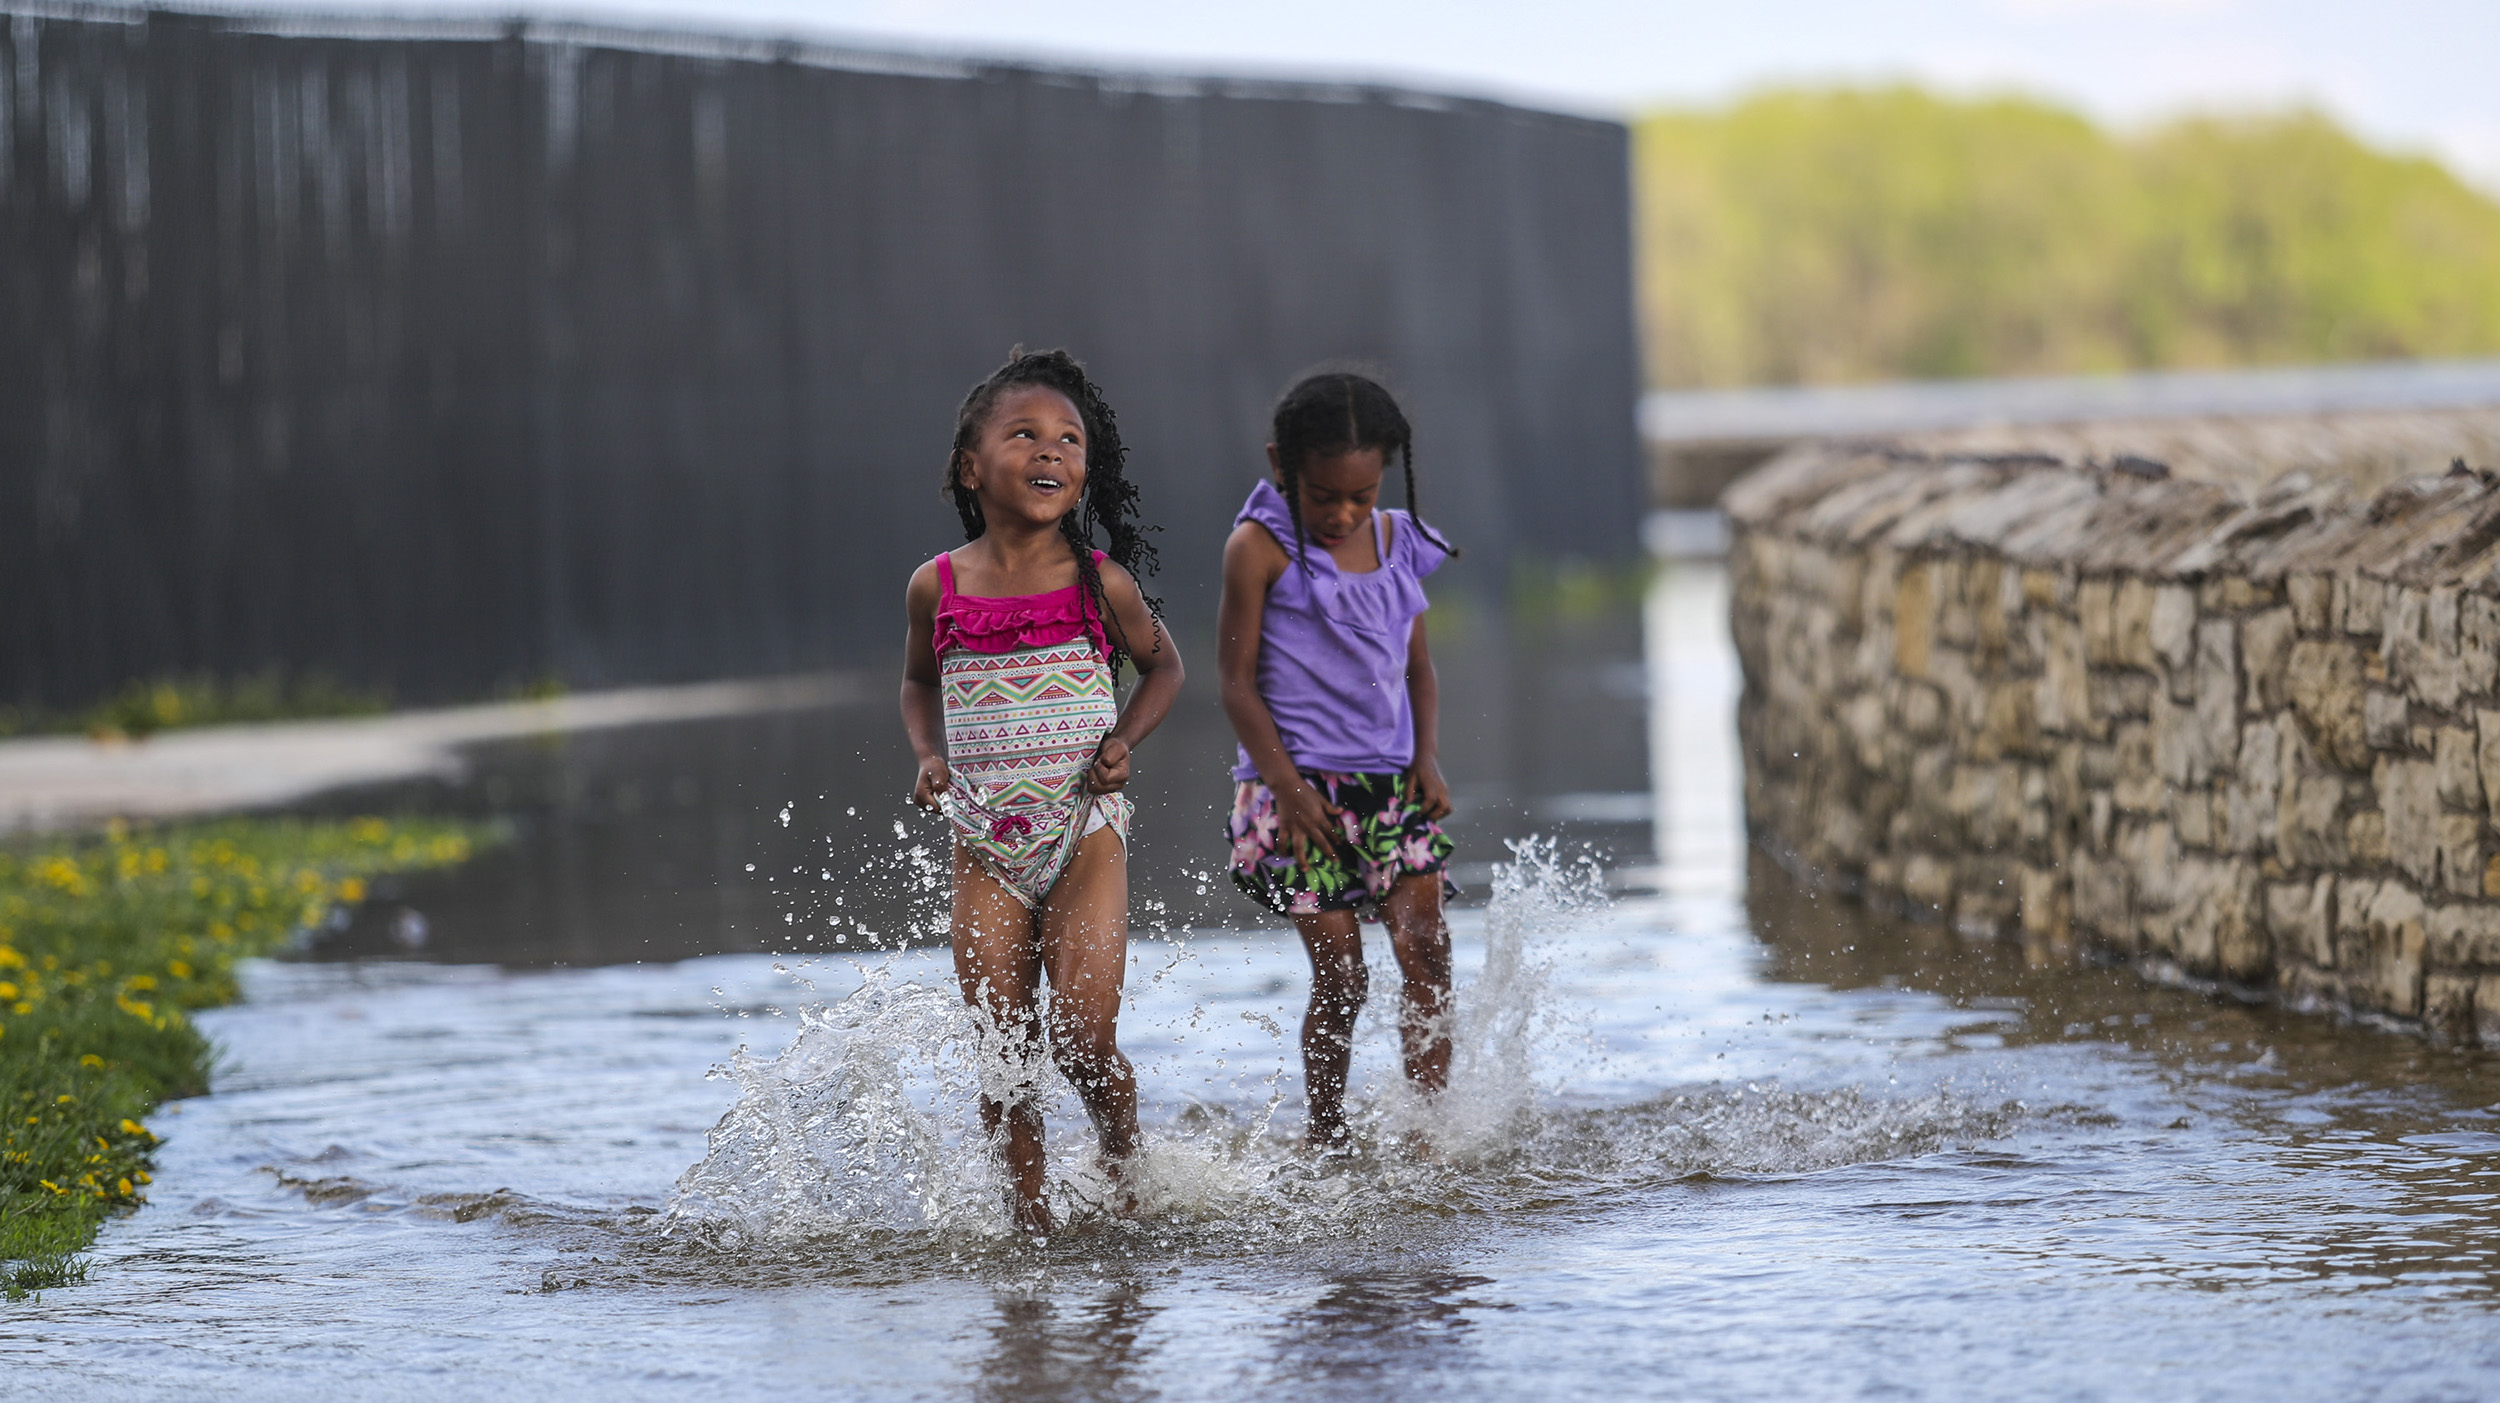 Sisters Queen, 5, left, and Nesse Howard, 4, of Moline play together in shallow flood waters behind Modern Woodmen Park as their dad fishes on the Mississippi riverfront in Davenport, Sunday, May 6, 2018.